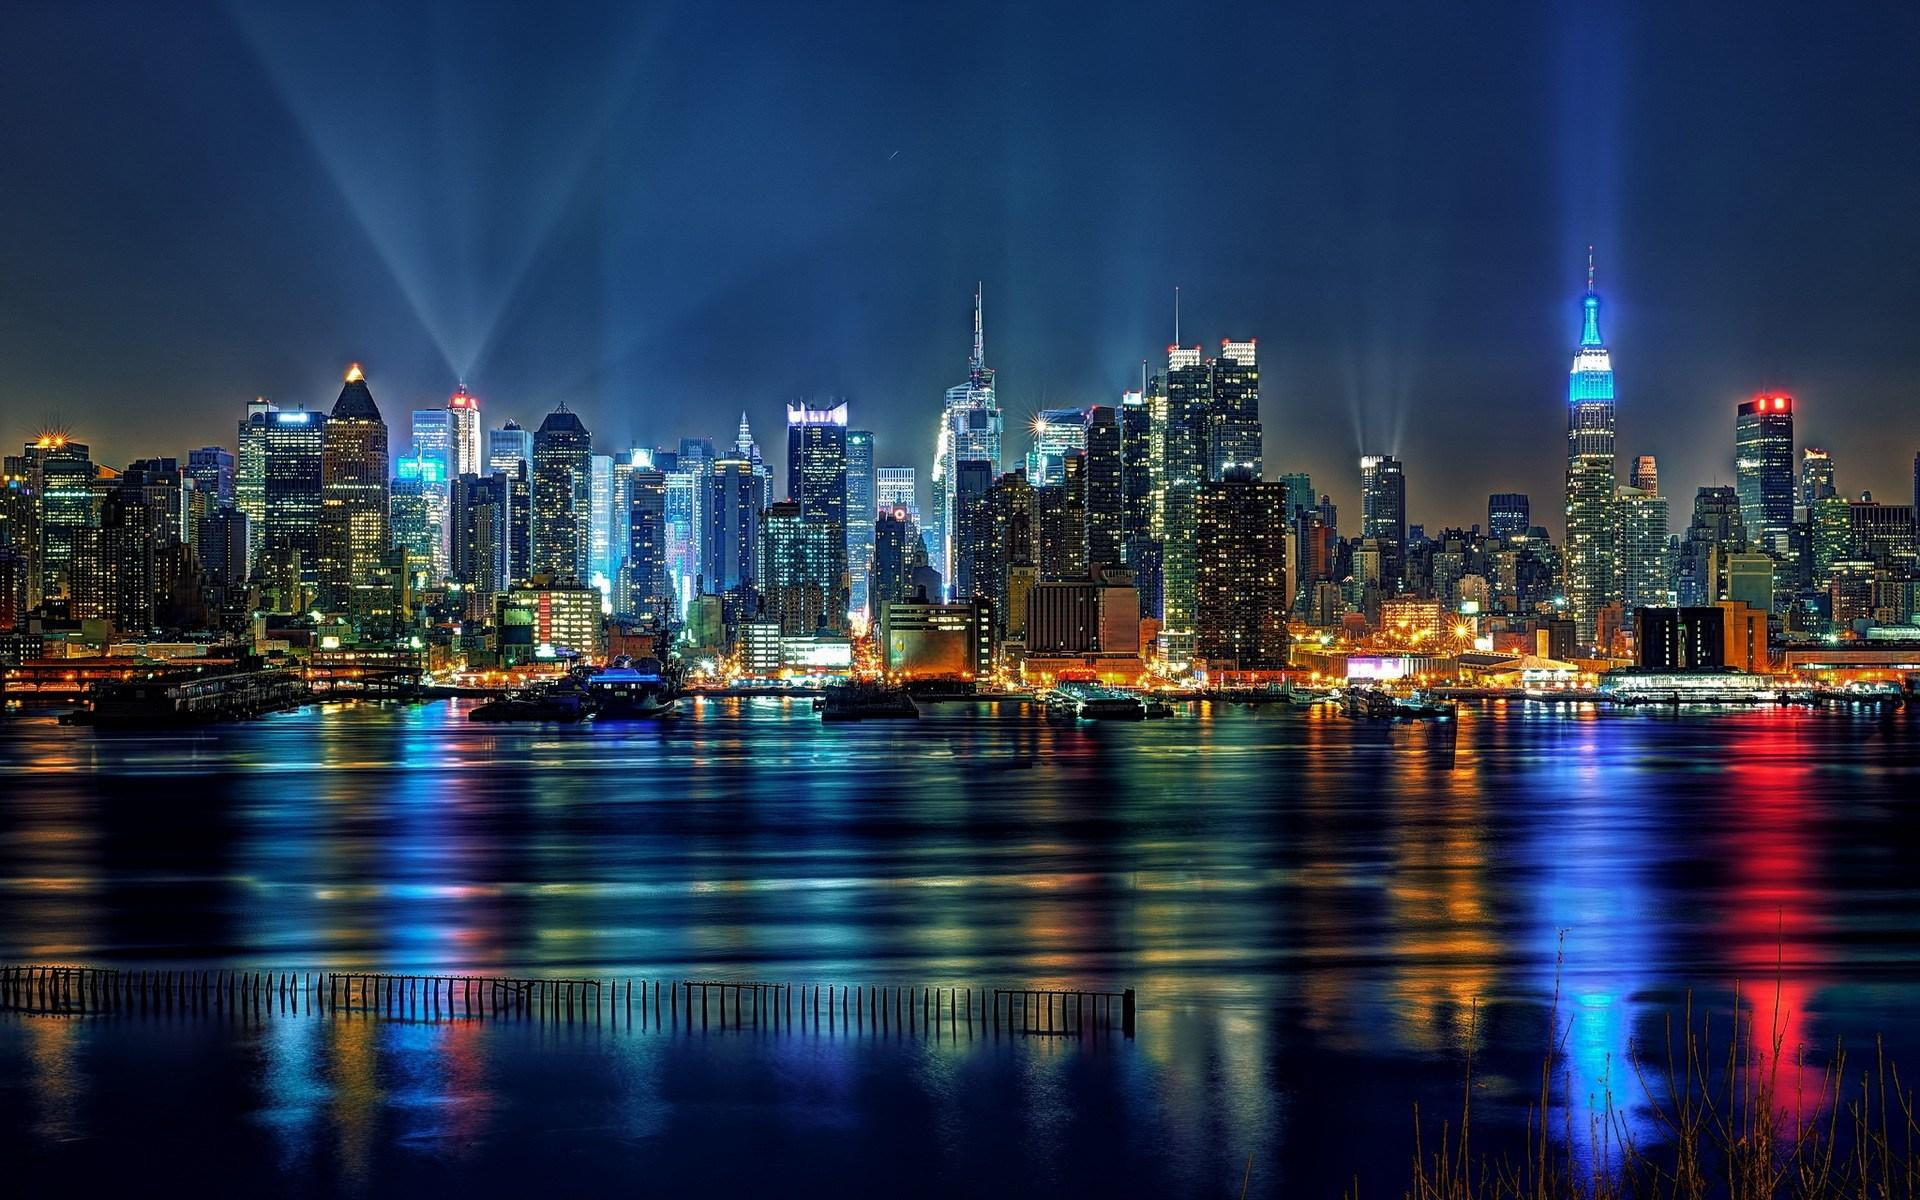 New Jersey City Wallpaper - HD Wallpapers